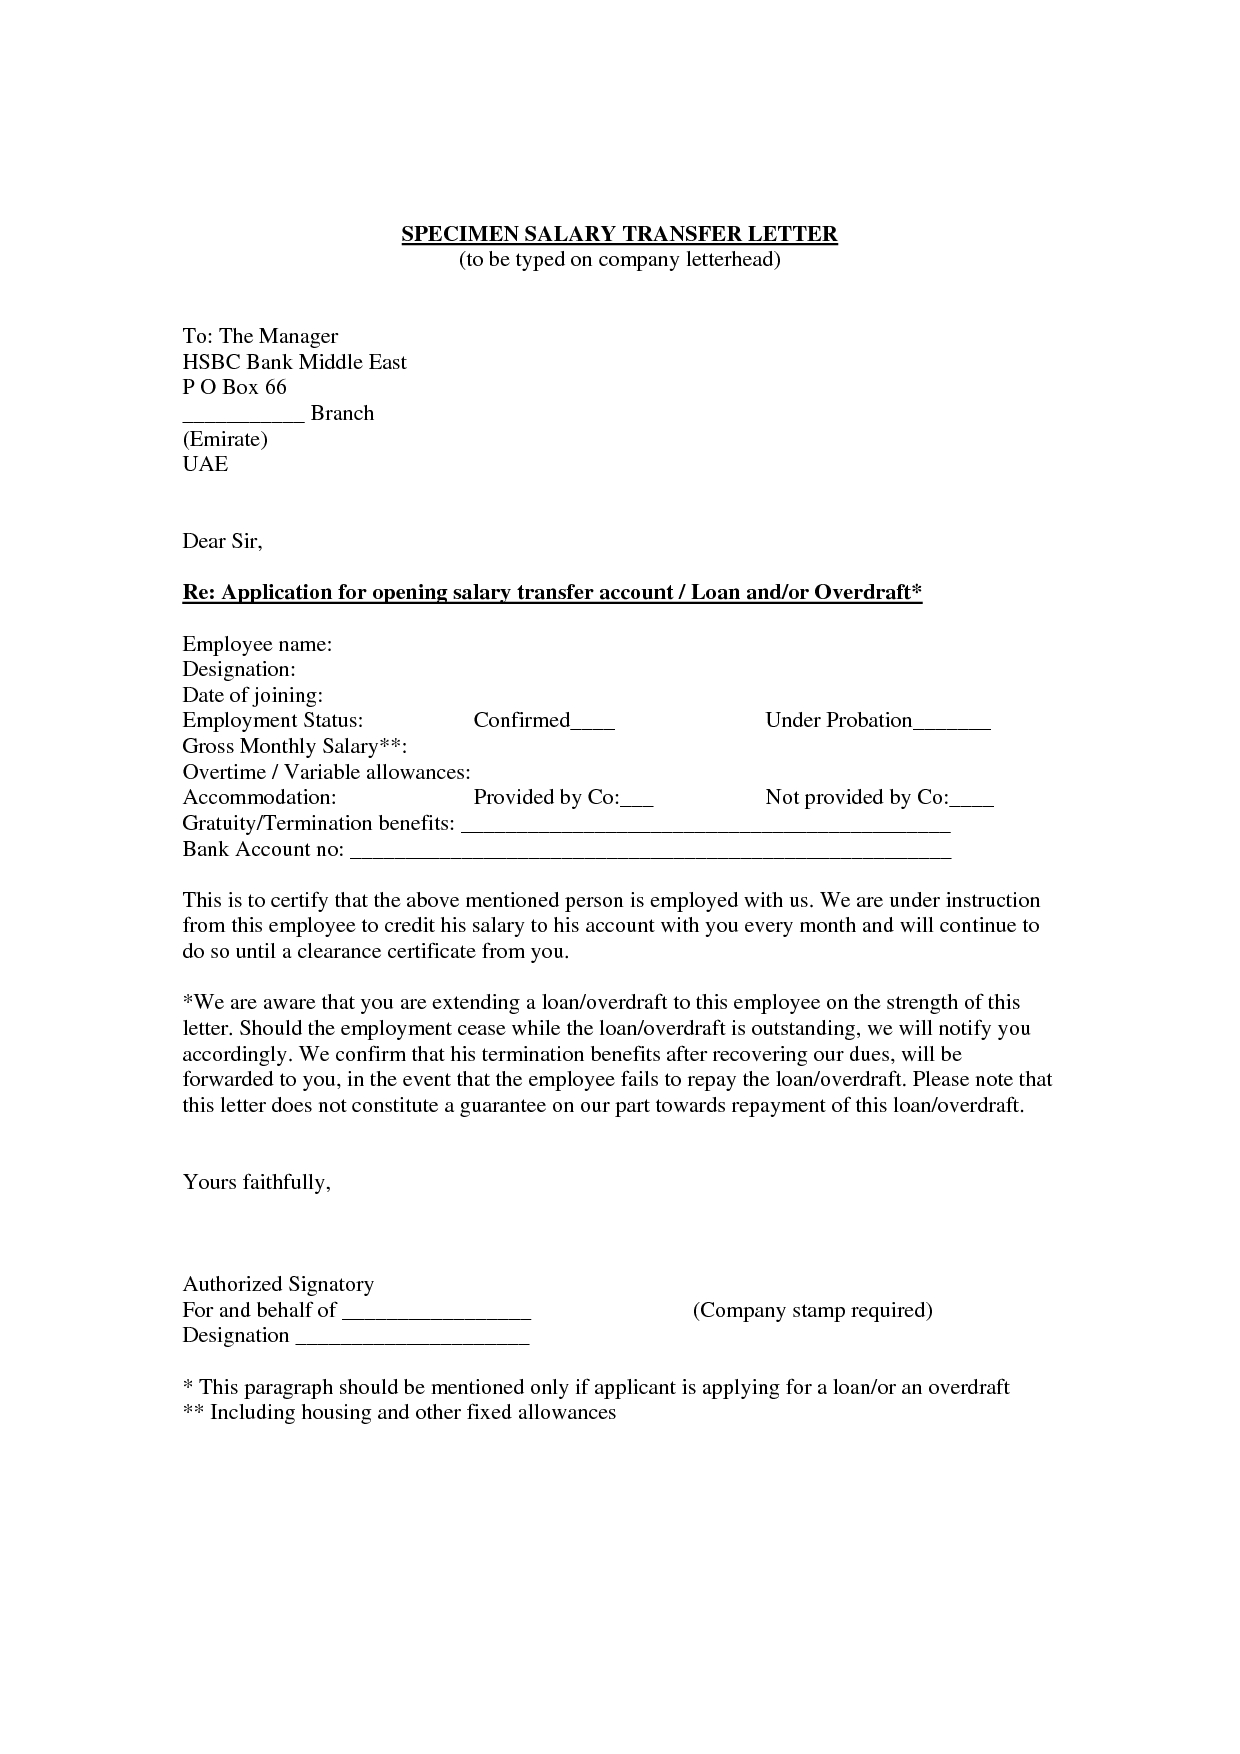 Transfer Letter Template - How to Write A Transfer Letter to An Employee Gallery Letter